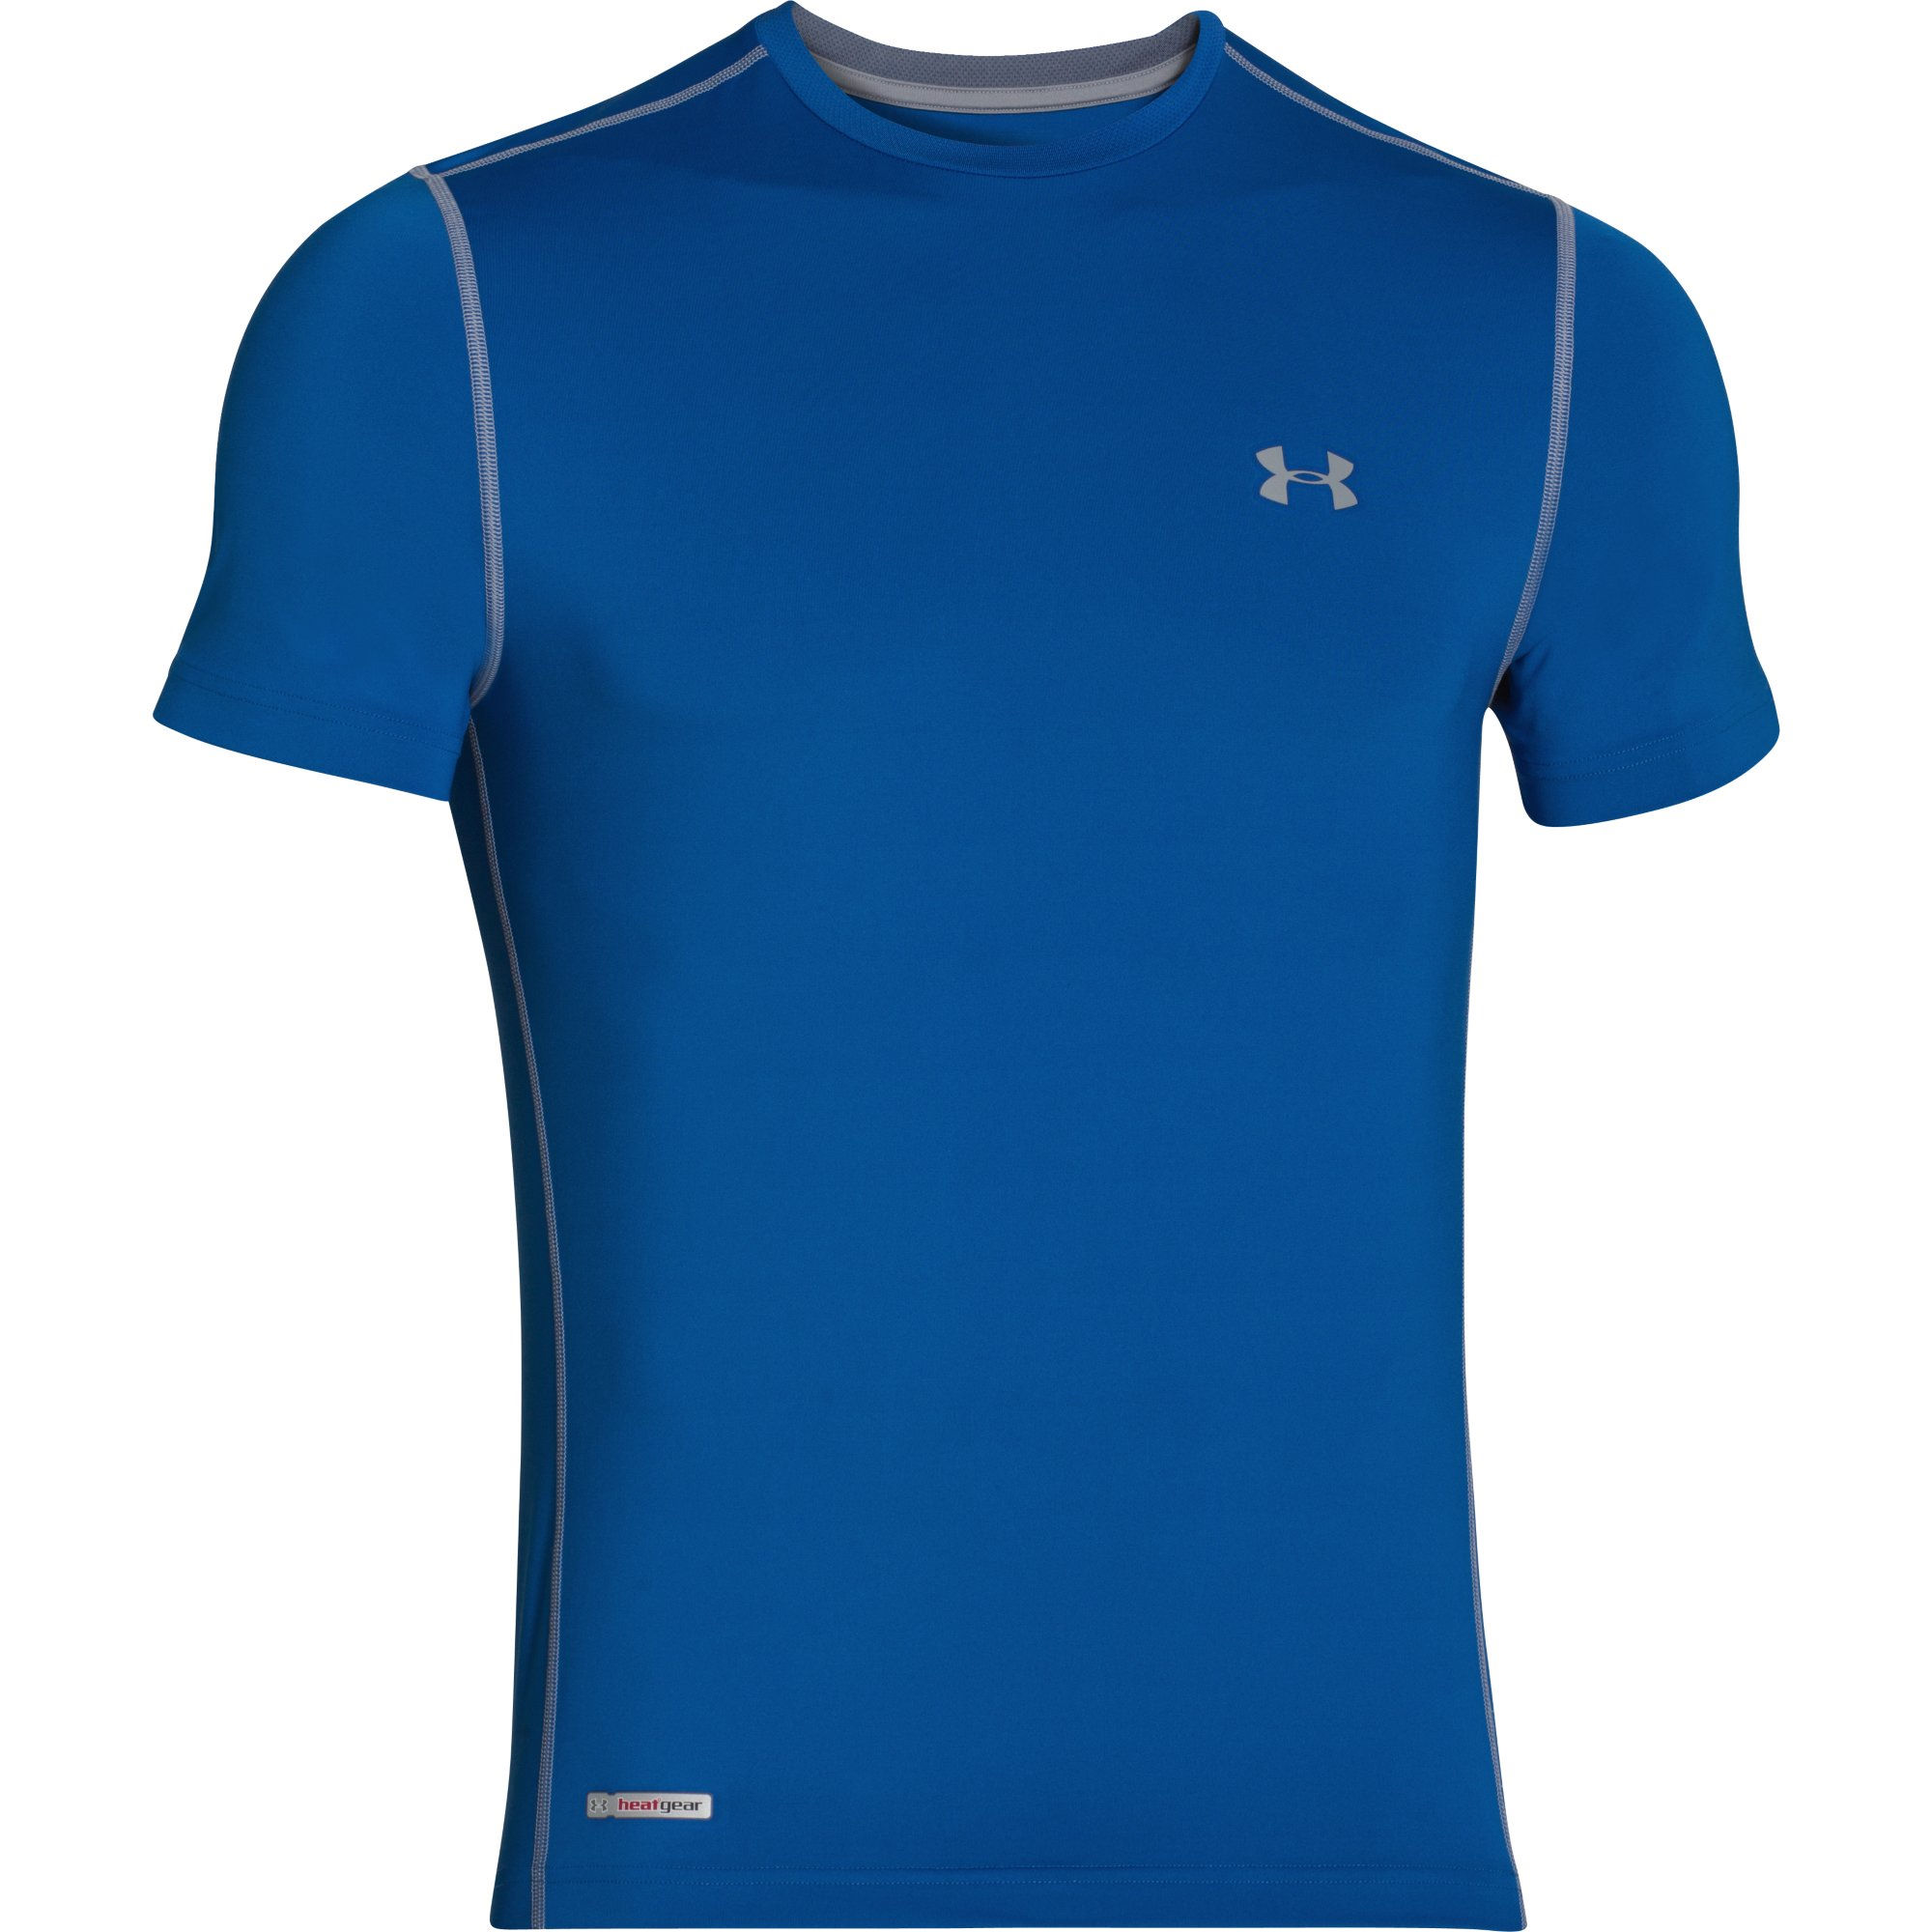 Maillots de running manches courtes under armour for Under armour fitted t shirt